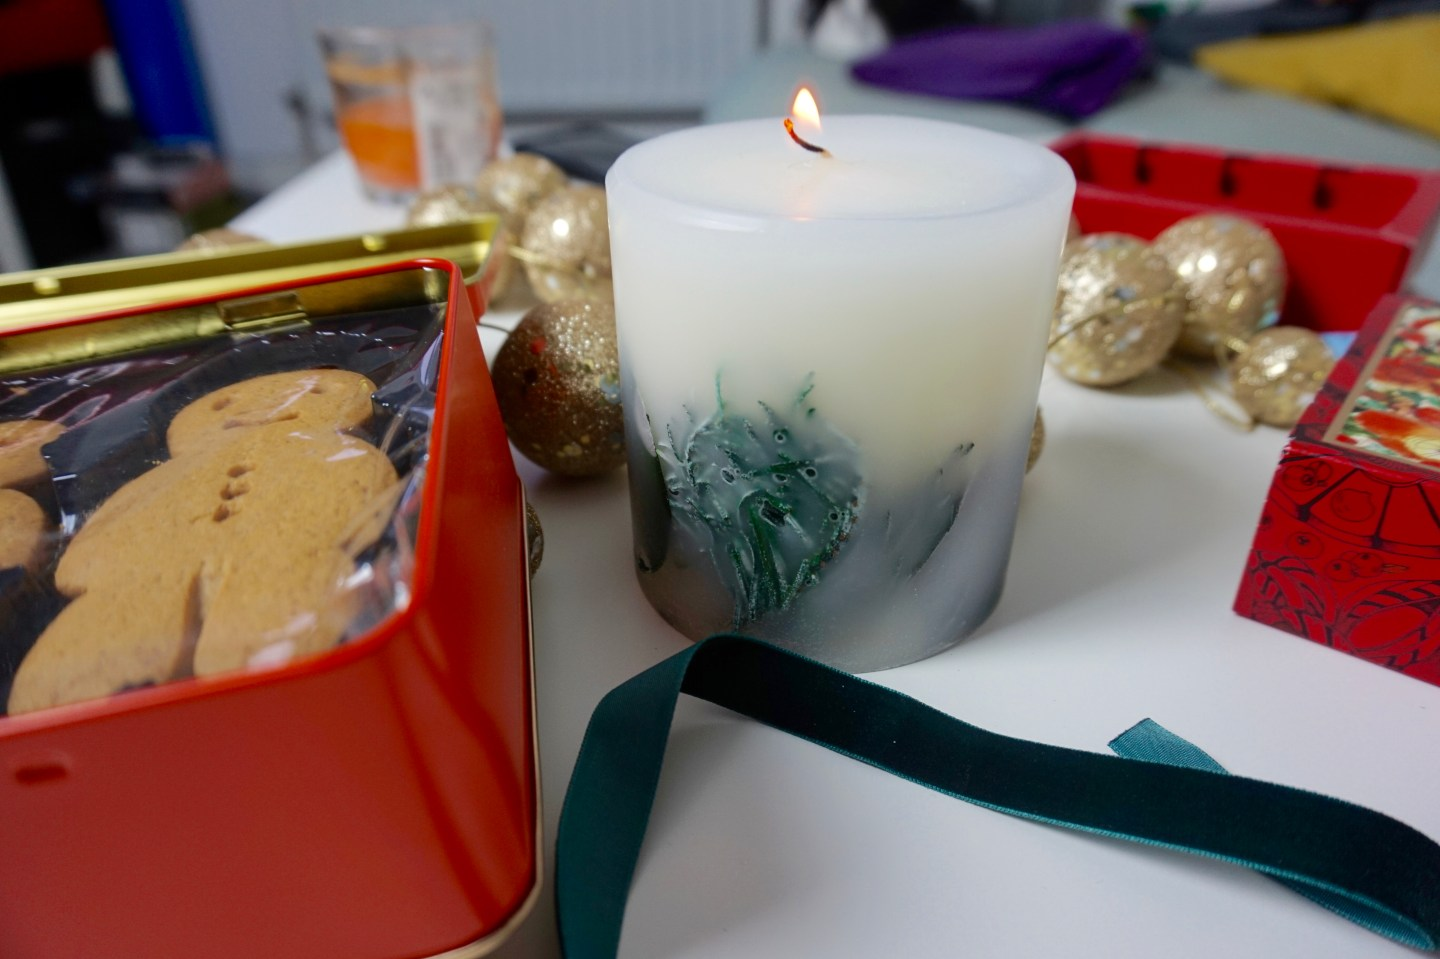 crabtree-evelyn-london-raychel-says-christmas-gift-guide-candle-botanical